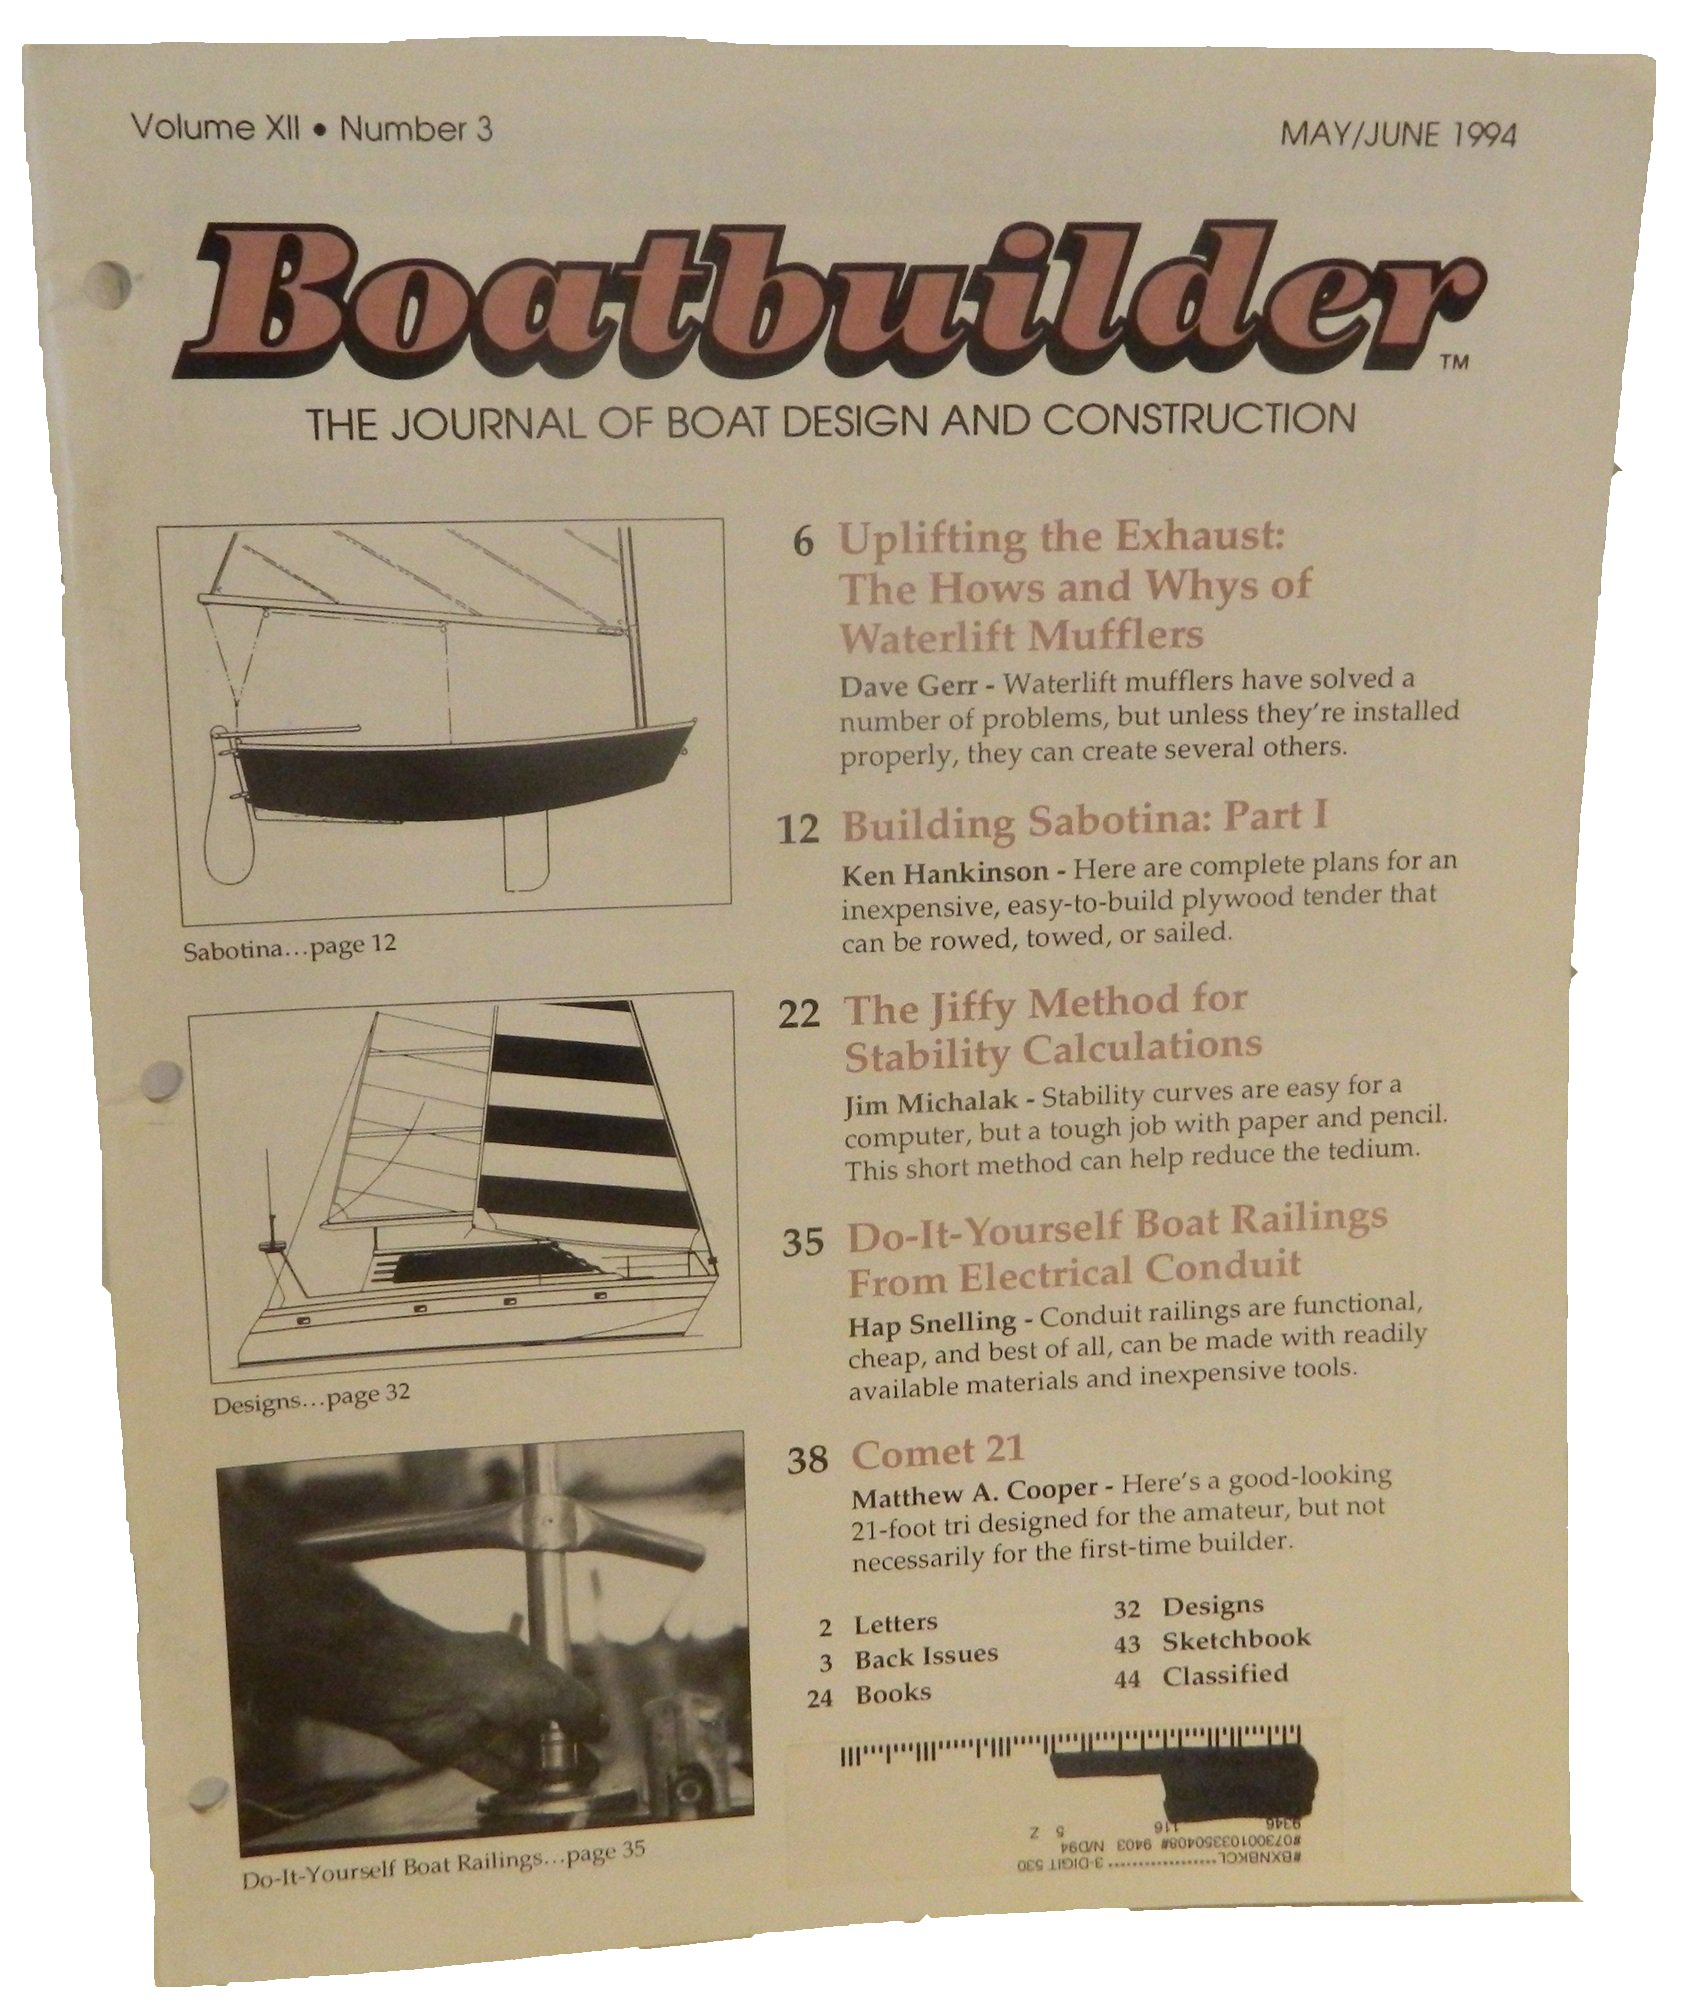 Uplifting the Exhaust: The Hows and Whys of Waterlift Mufflers / Building Sabotina: Part 1 / The Jiffy Method for Stability Calculations / Do-It-Yourself Boat Railings from Electrical Conduit / Comet 21: 21-Foot Tri Designed for the Amateur (Boatbuilder: The Journal of Boat Design and Construction, Volume 12, Number 3, May/June 1994)